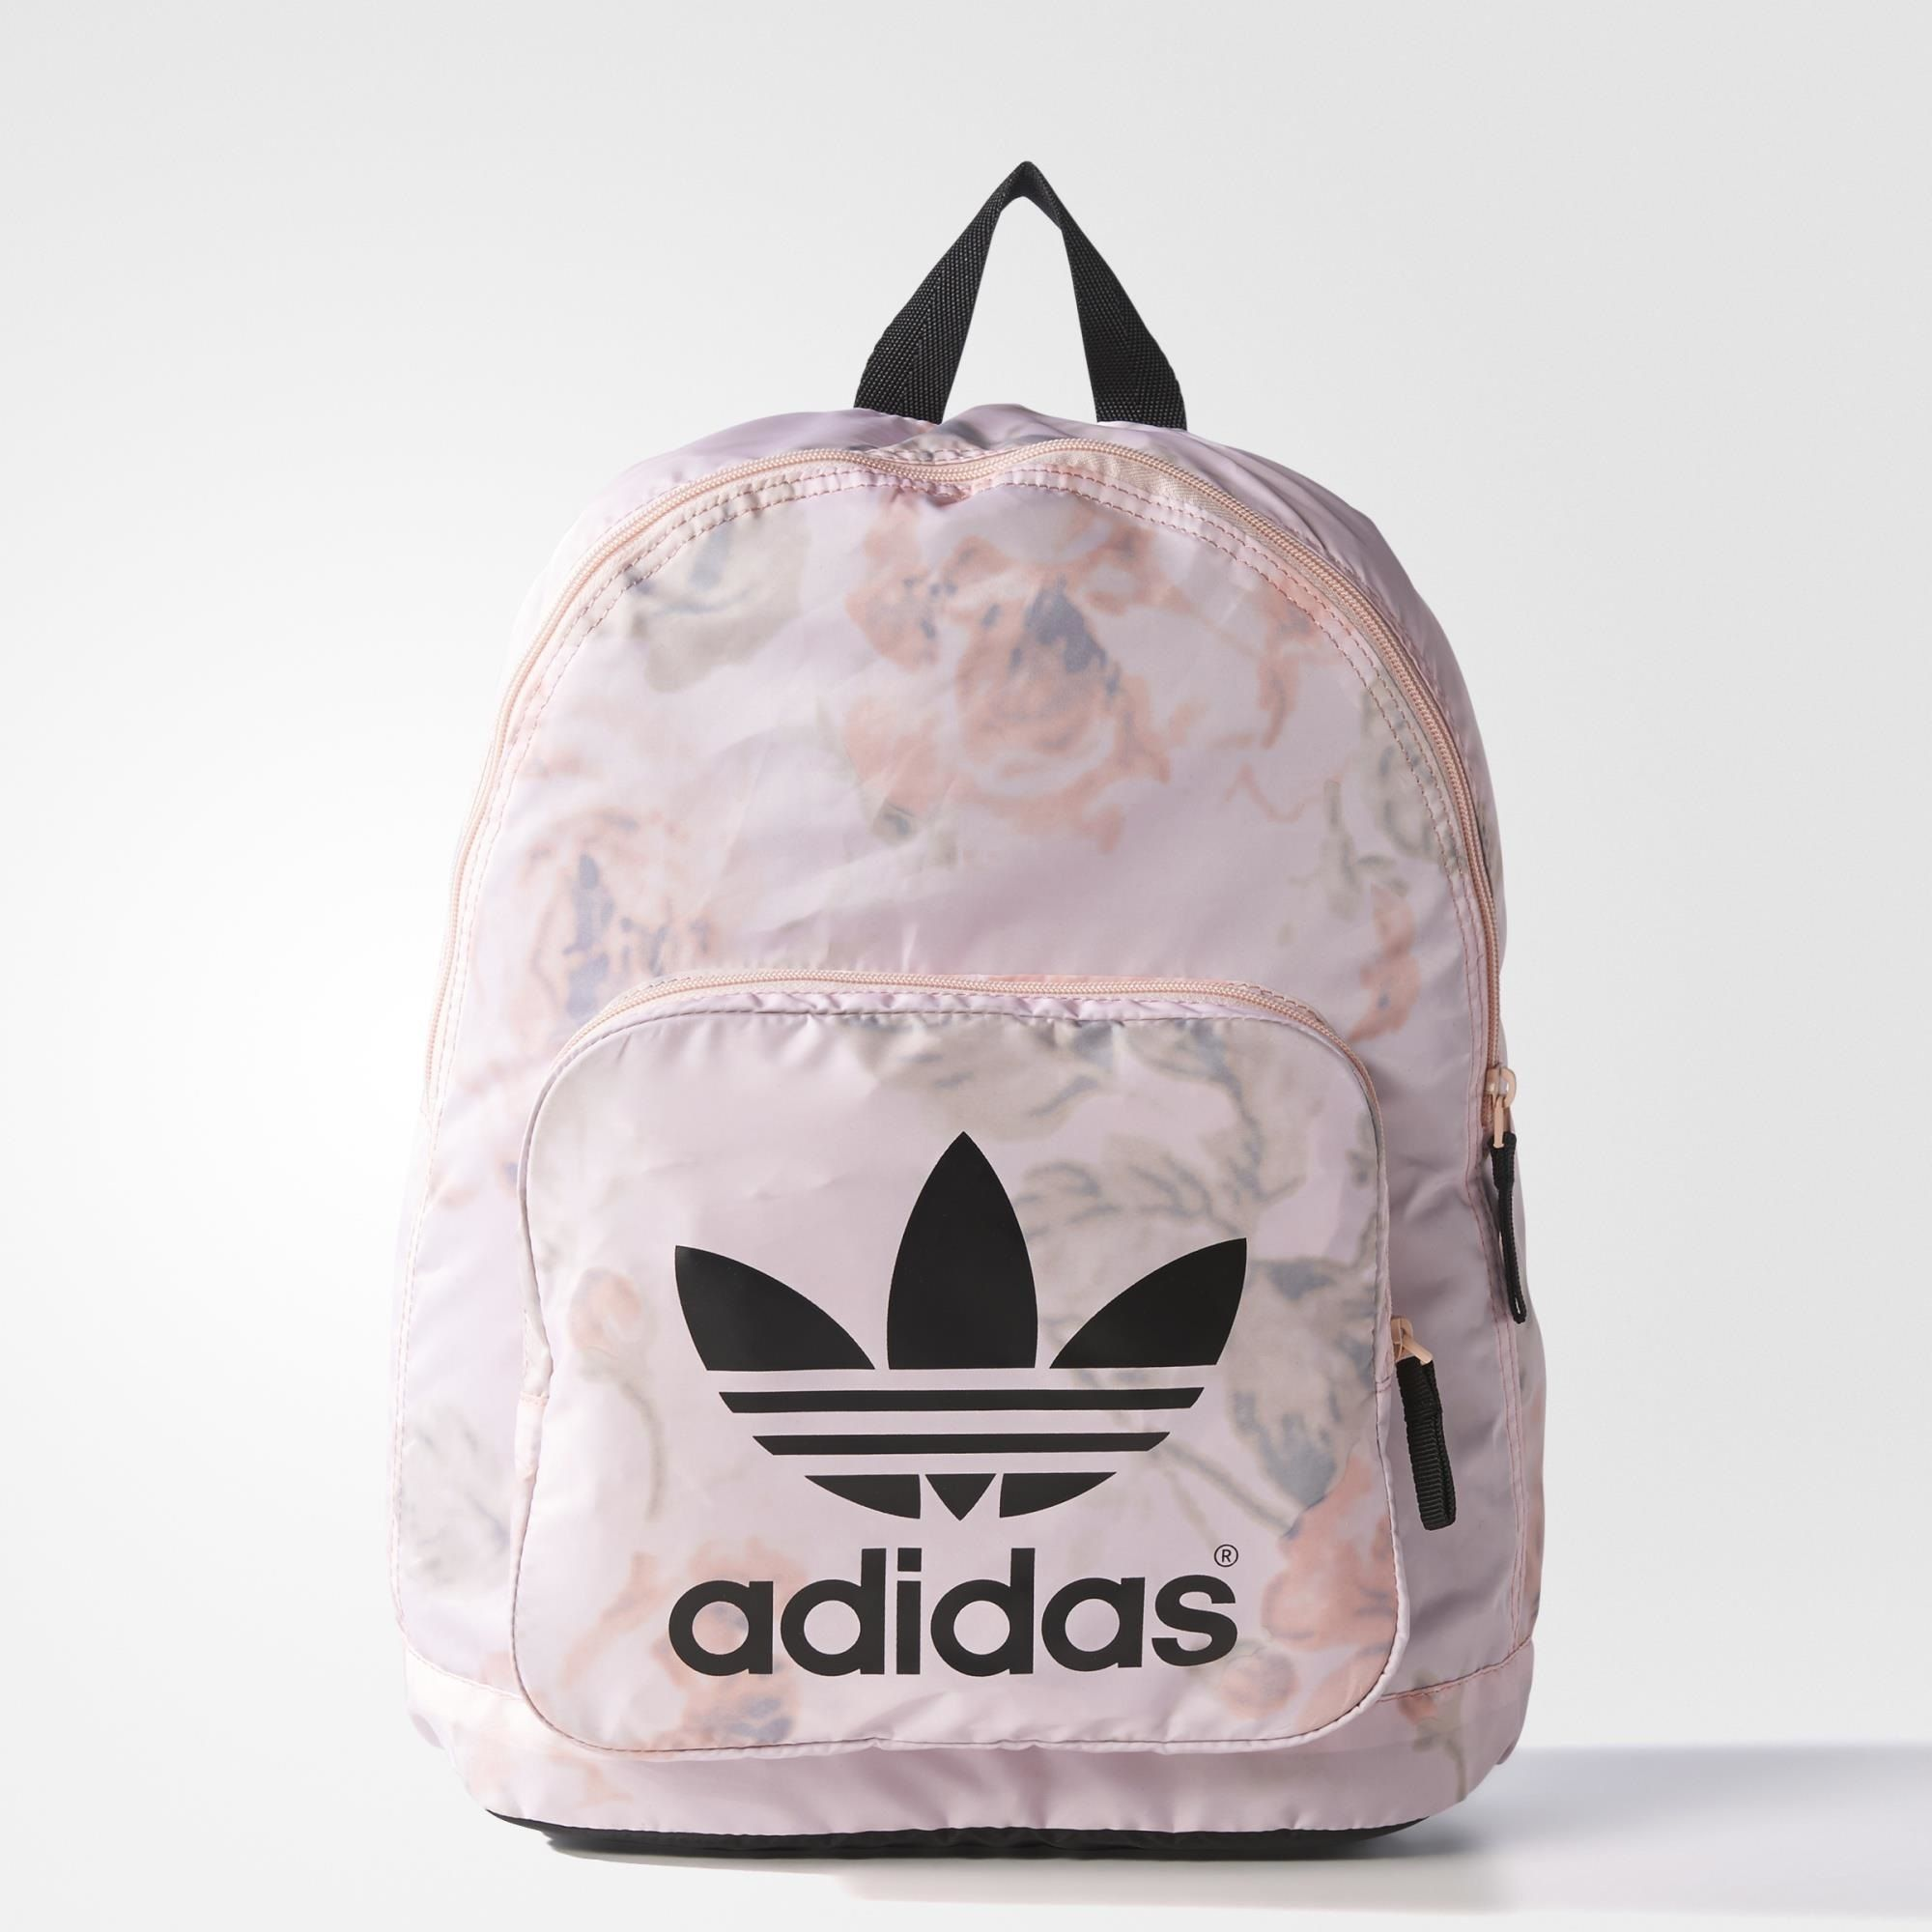 Adidas in pink mode, girls will love it